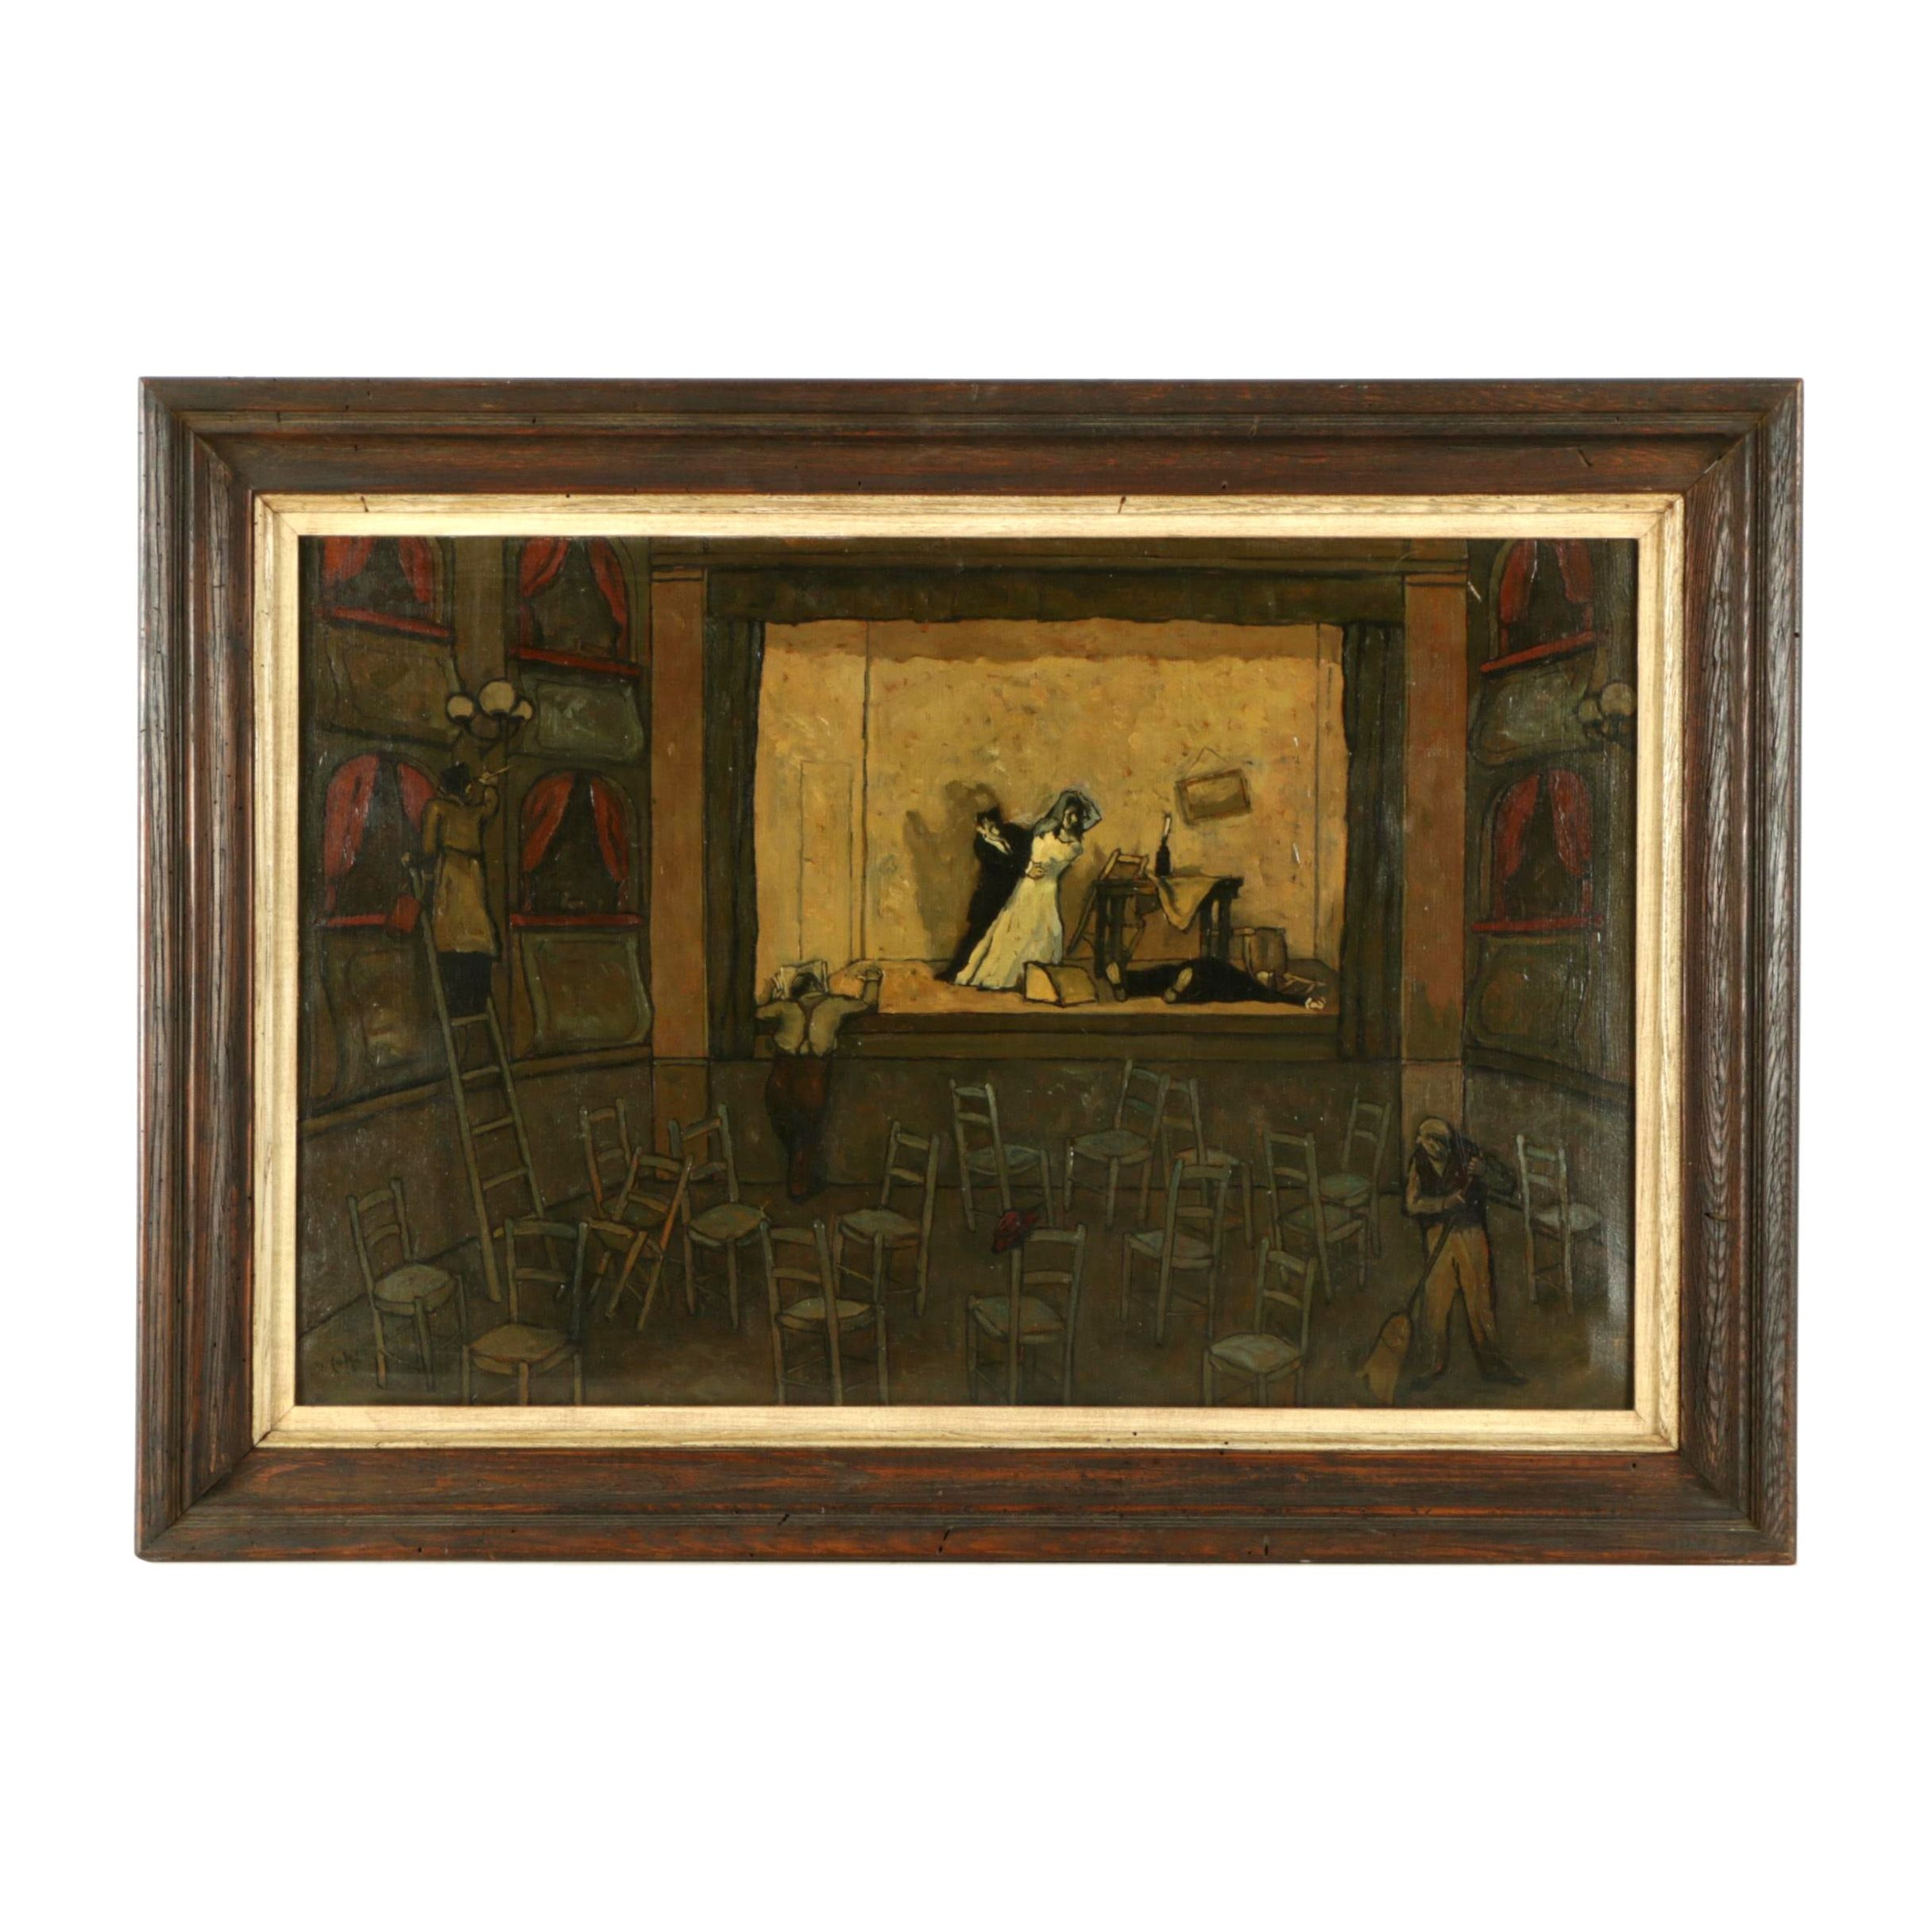 Original Oil Painting of Theater Rehearsal Scene